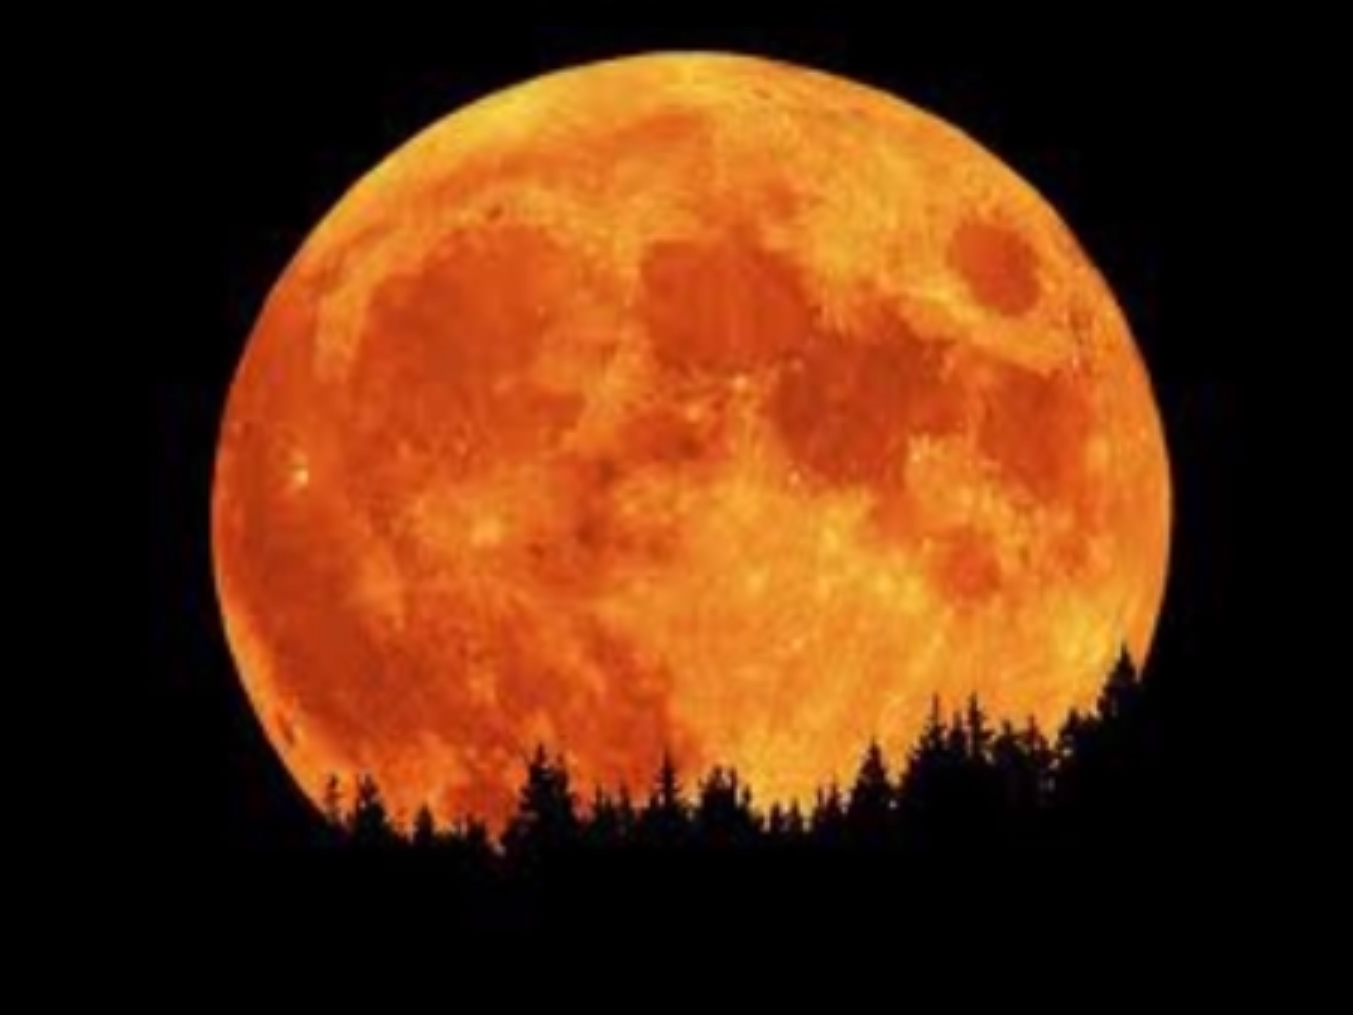 mindfulness: The moon